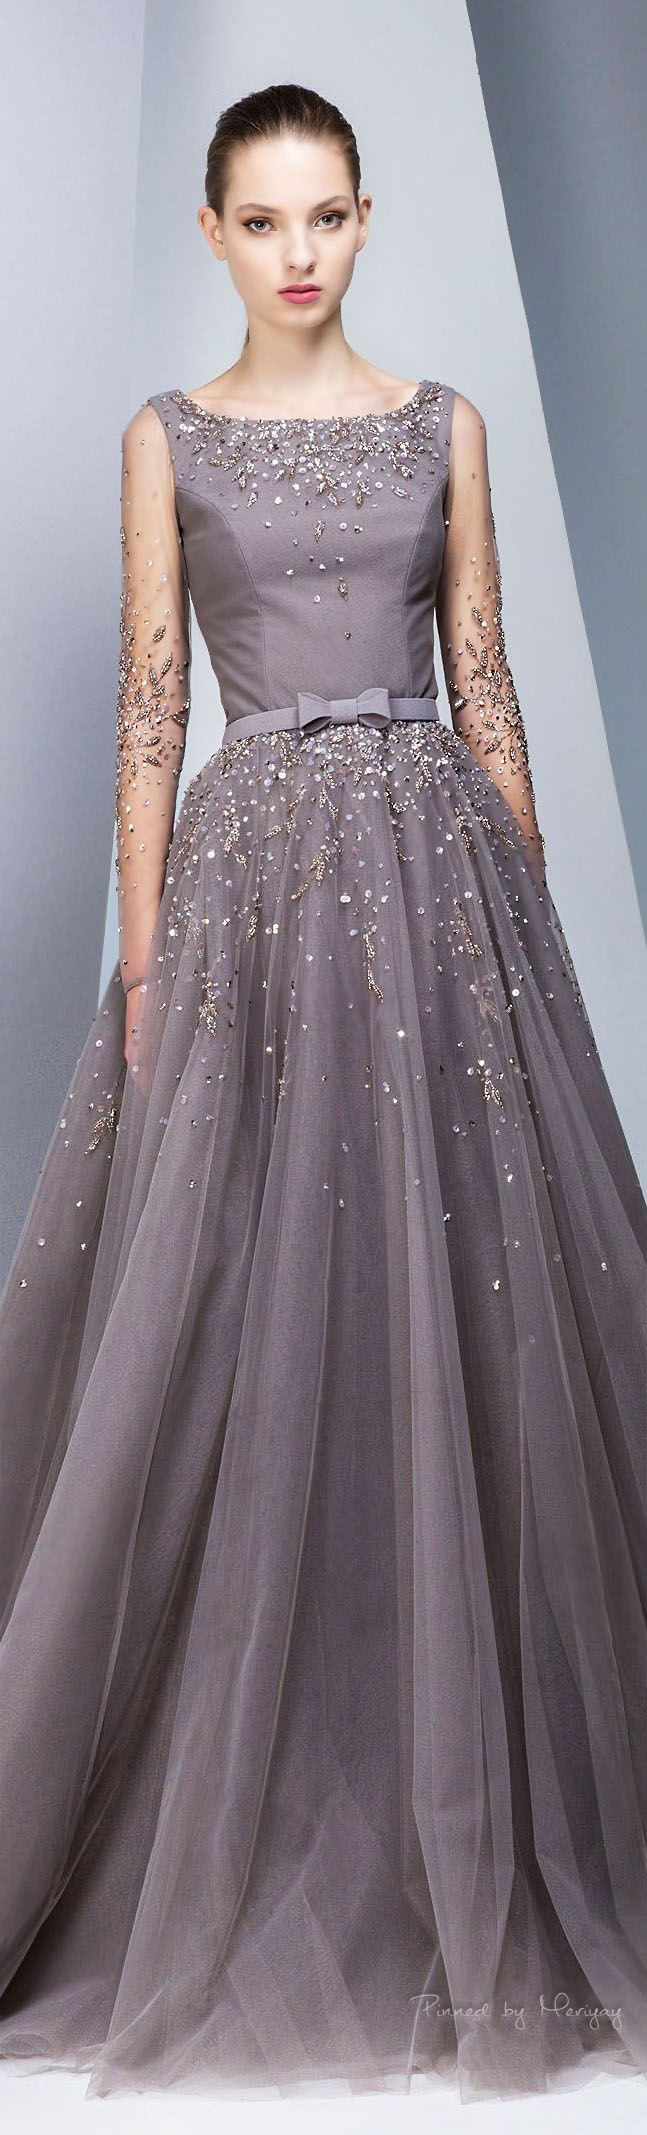 Georges Hobeika Fall-winter 2015.